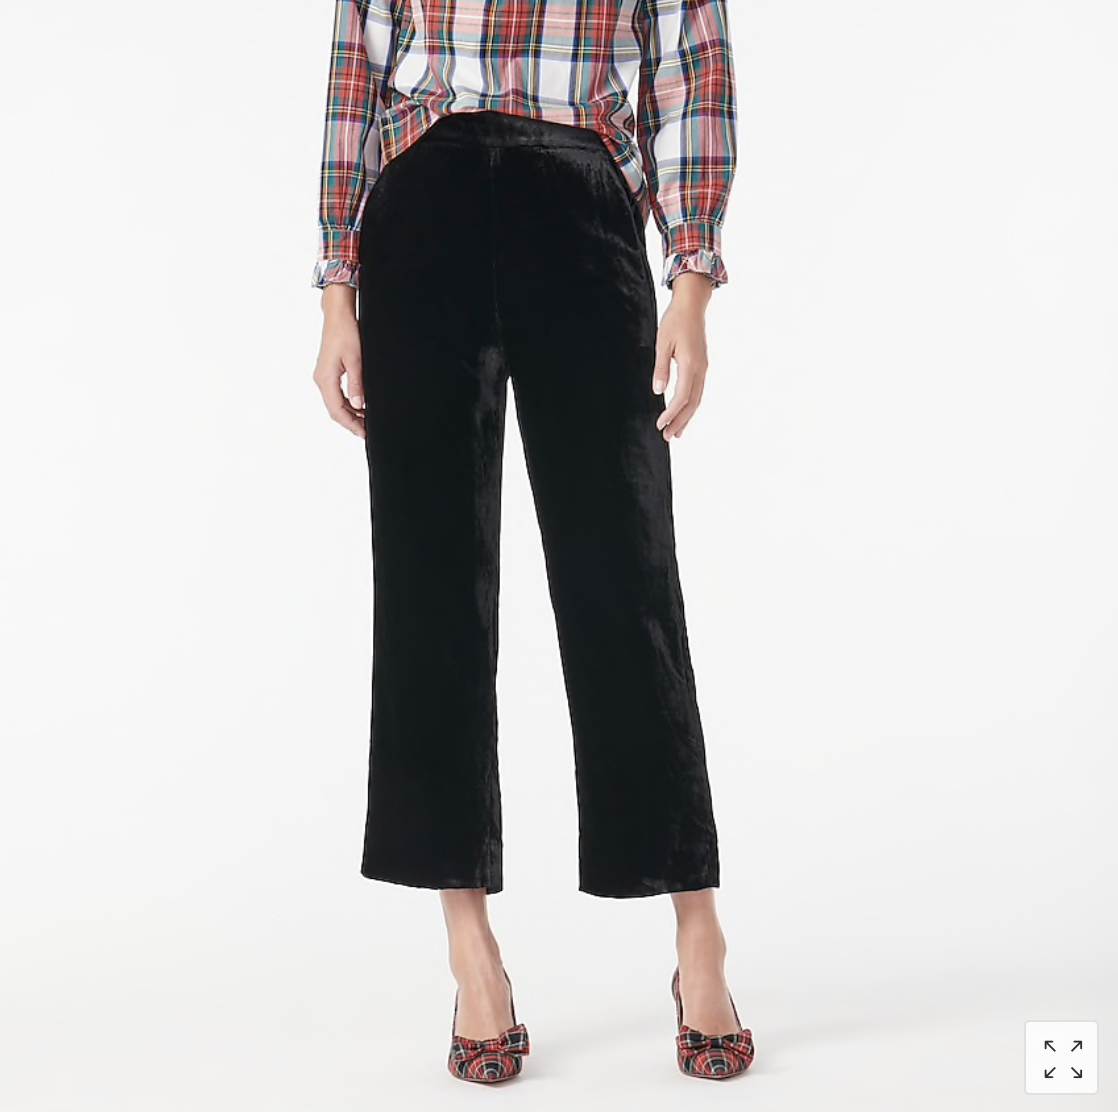 50 Off J Crew Black Friday Sale Early Access Kelly In The City In 2020 Preppy Fall Fashion Fall Fashion Outfits Autumn Fashion